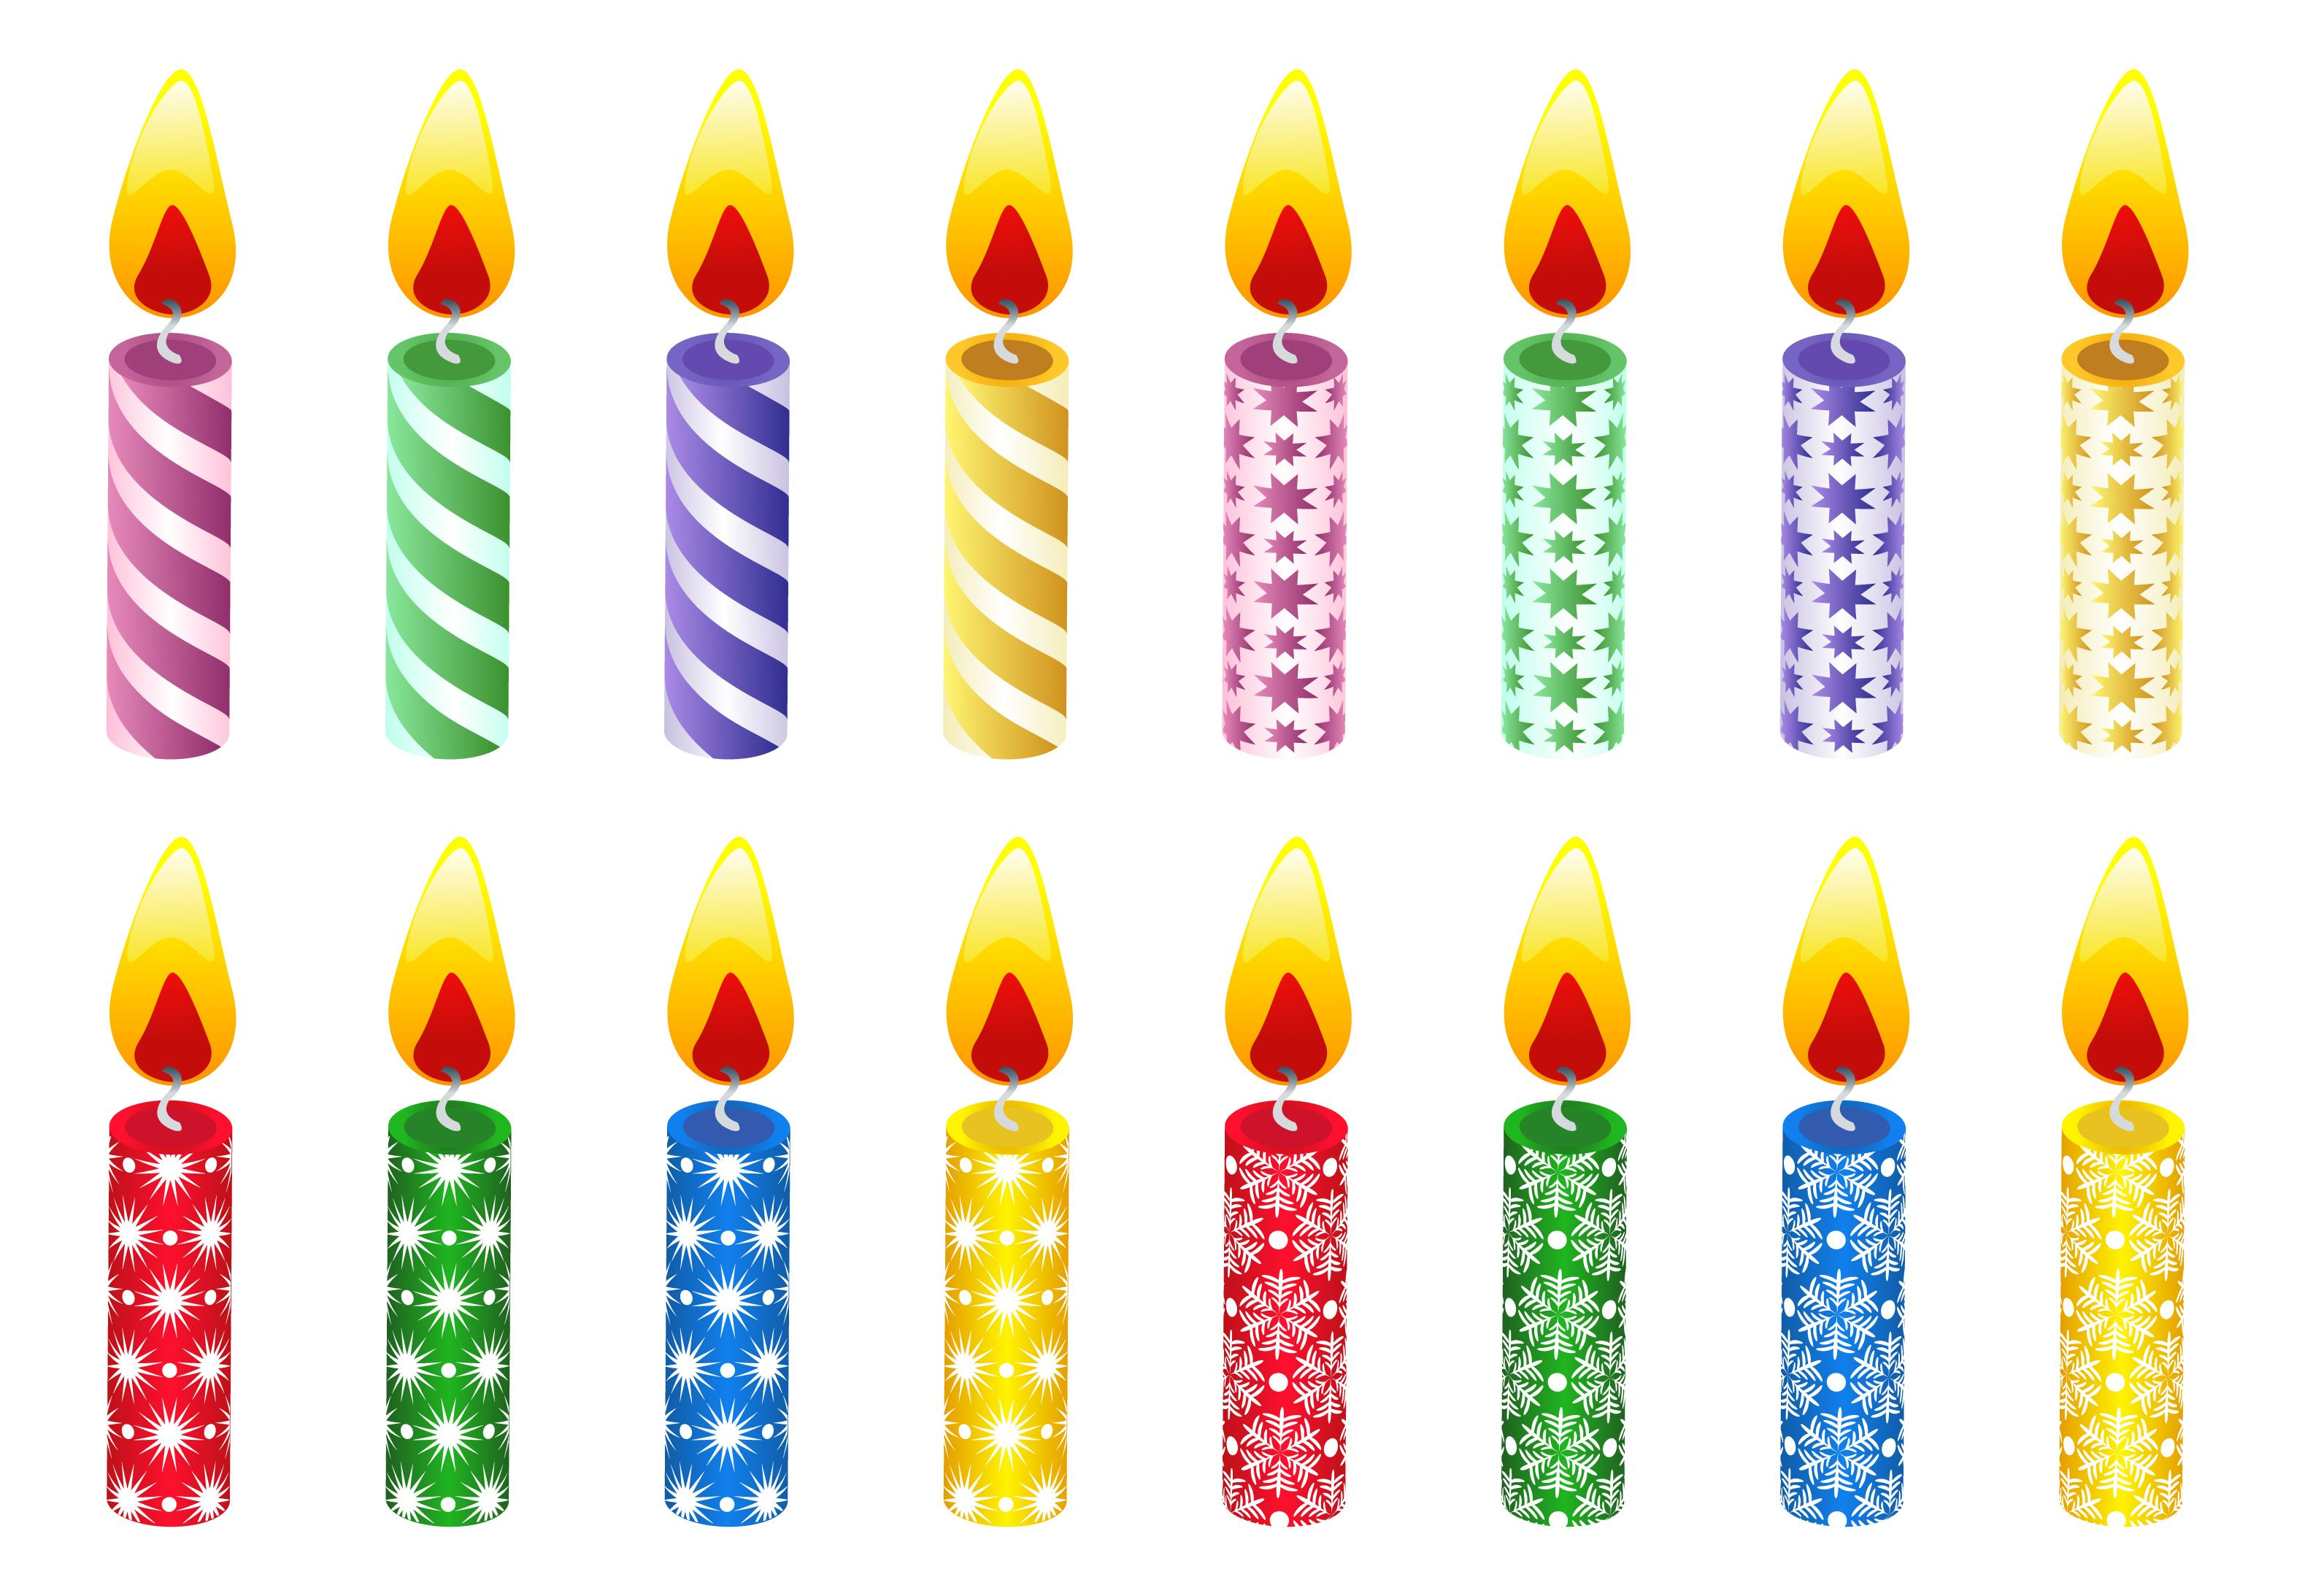 Gallery For Animated Candle Clip Art Free Birthday Candle Clipart Candle Clipart Birthday Candles